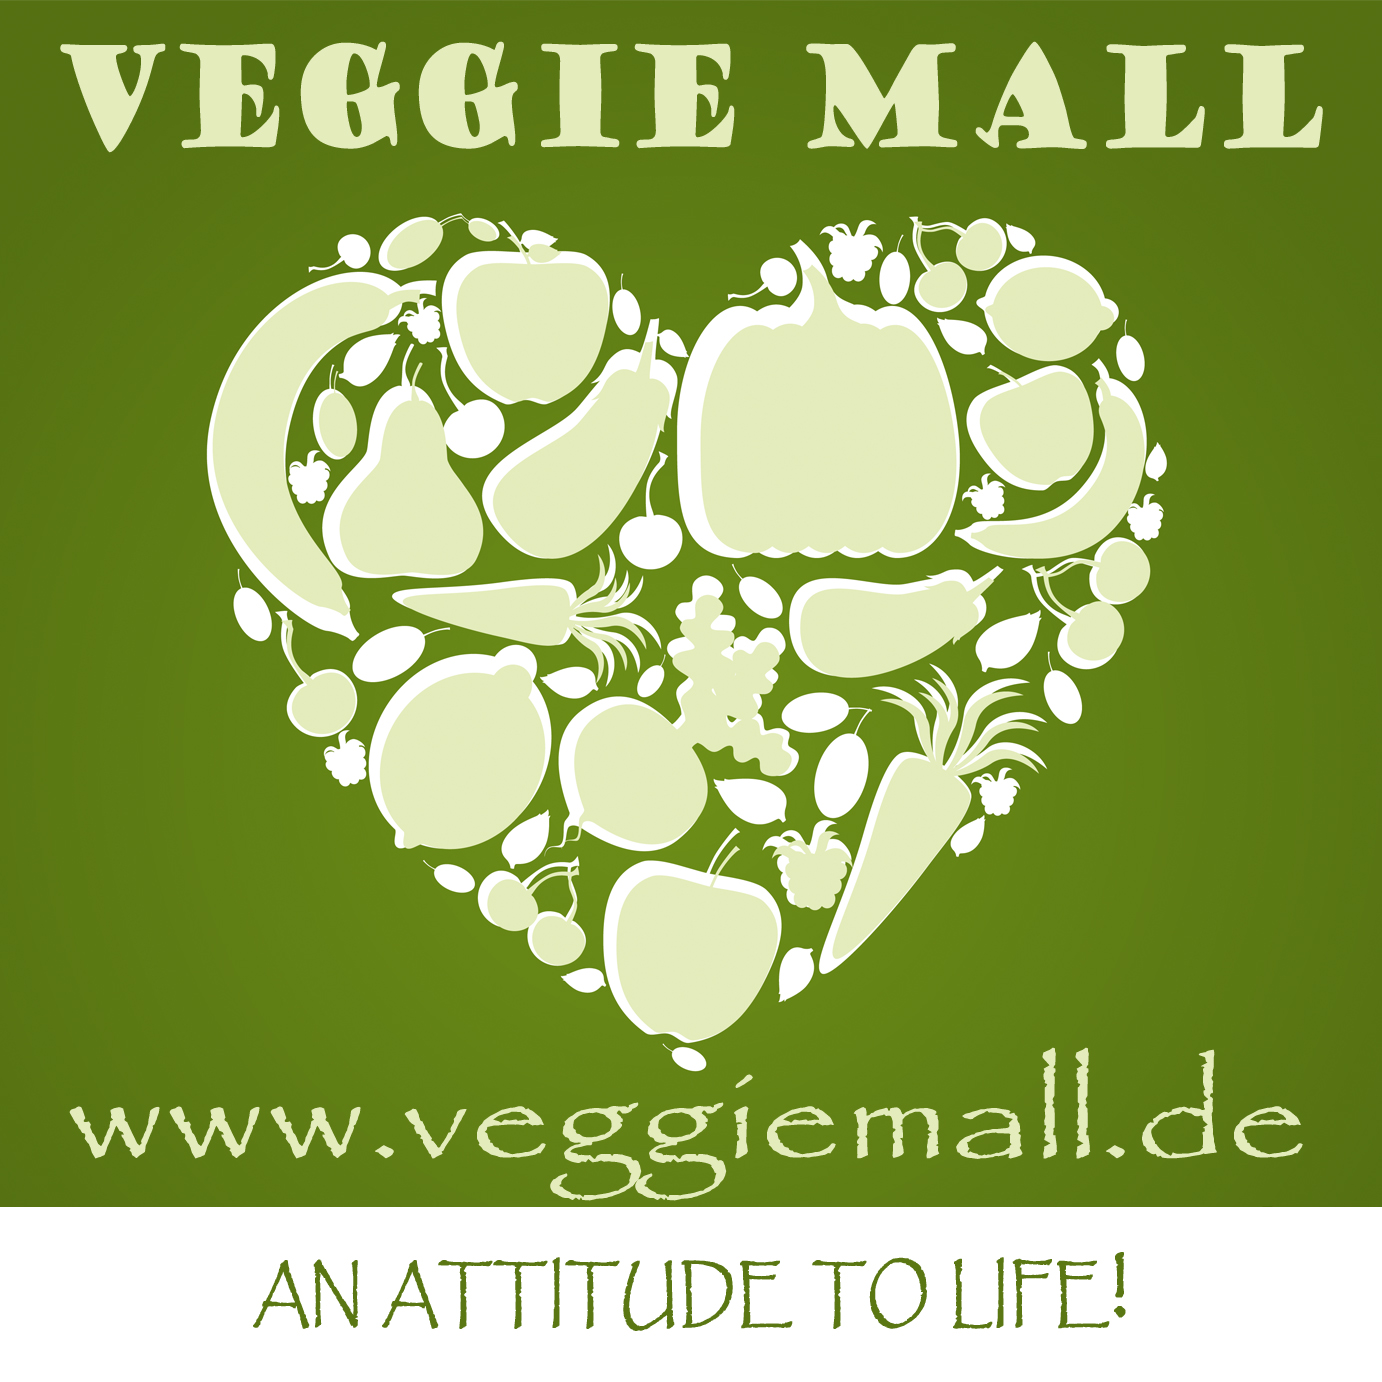 Veggie Mall